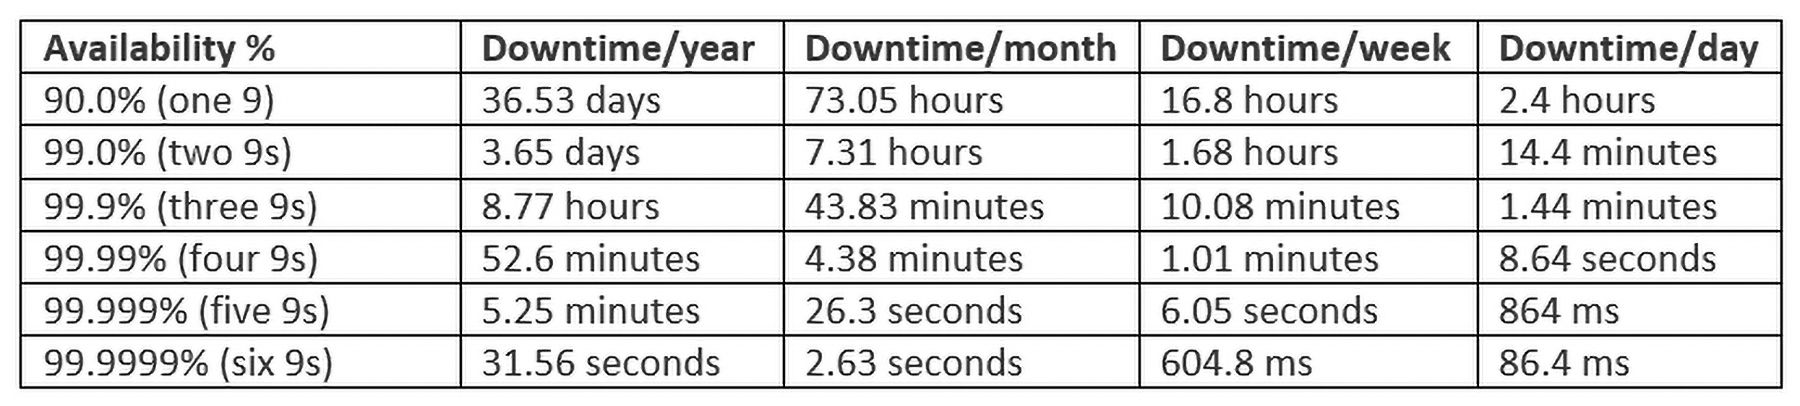 High Availability Downtime chart for disaster recovery